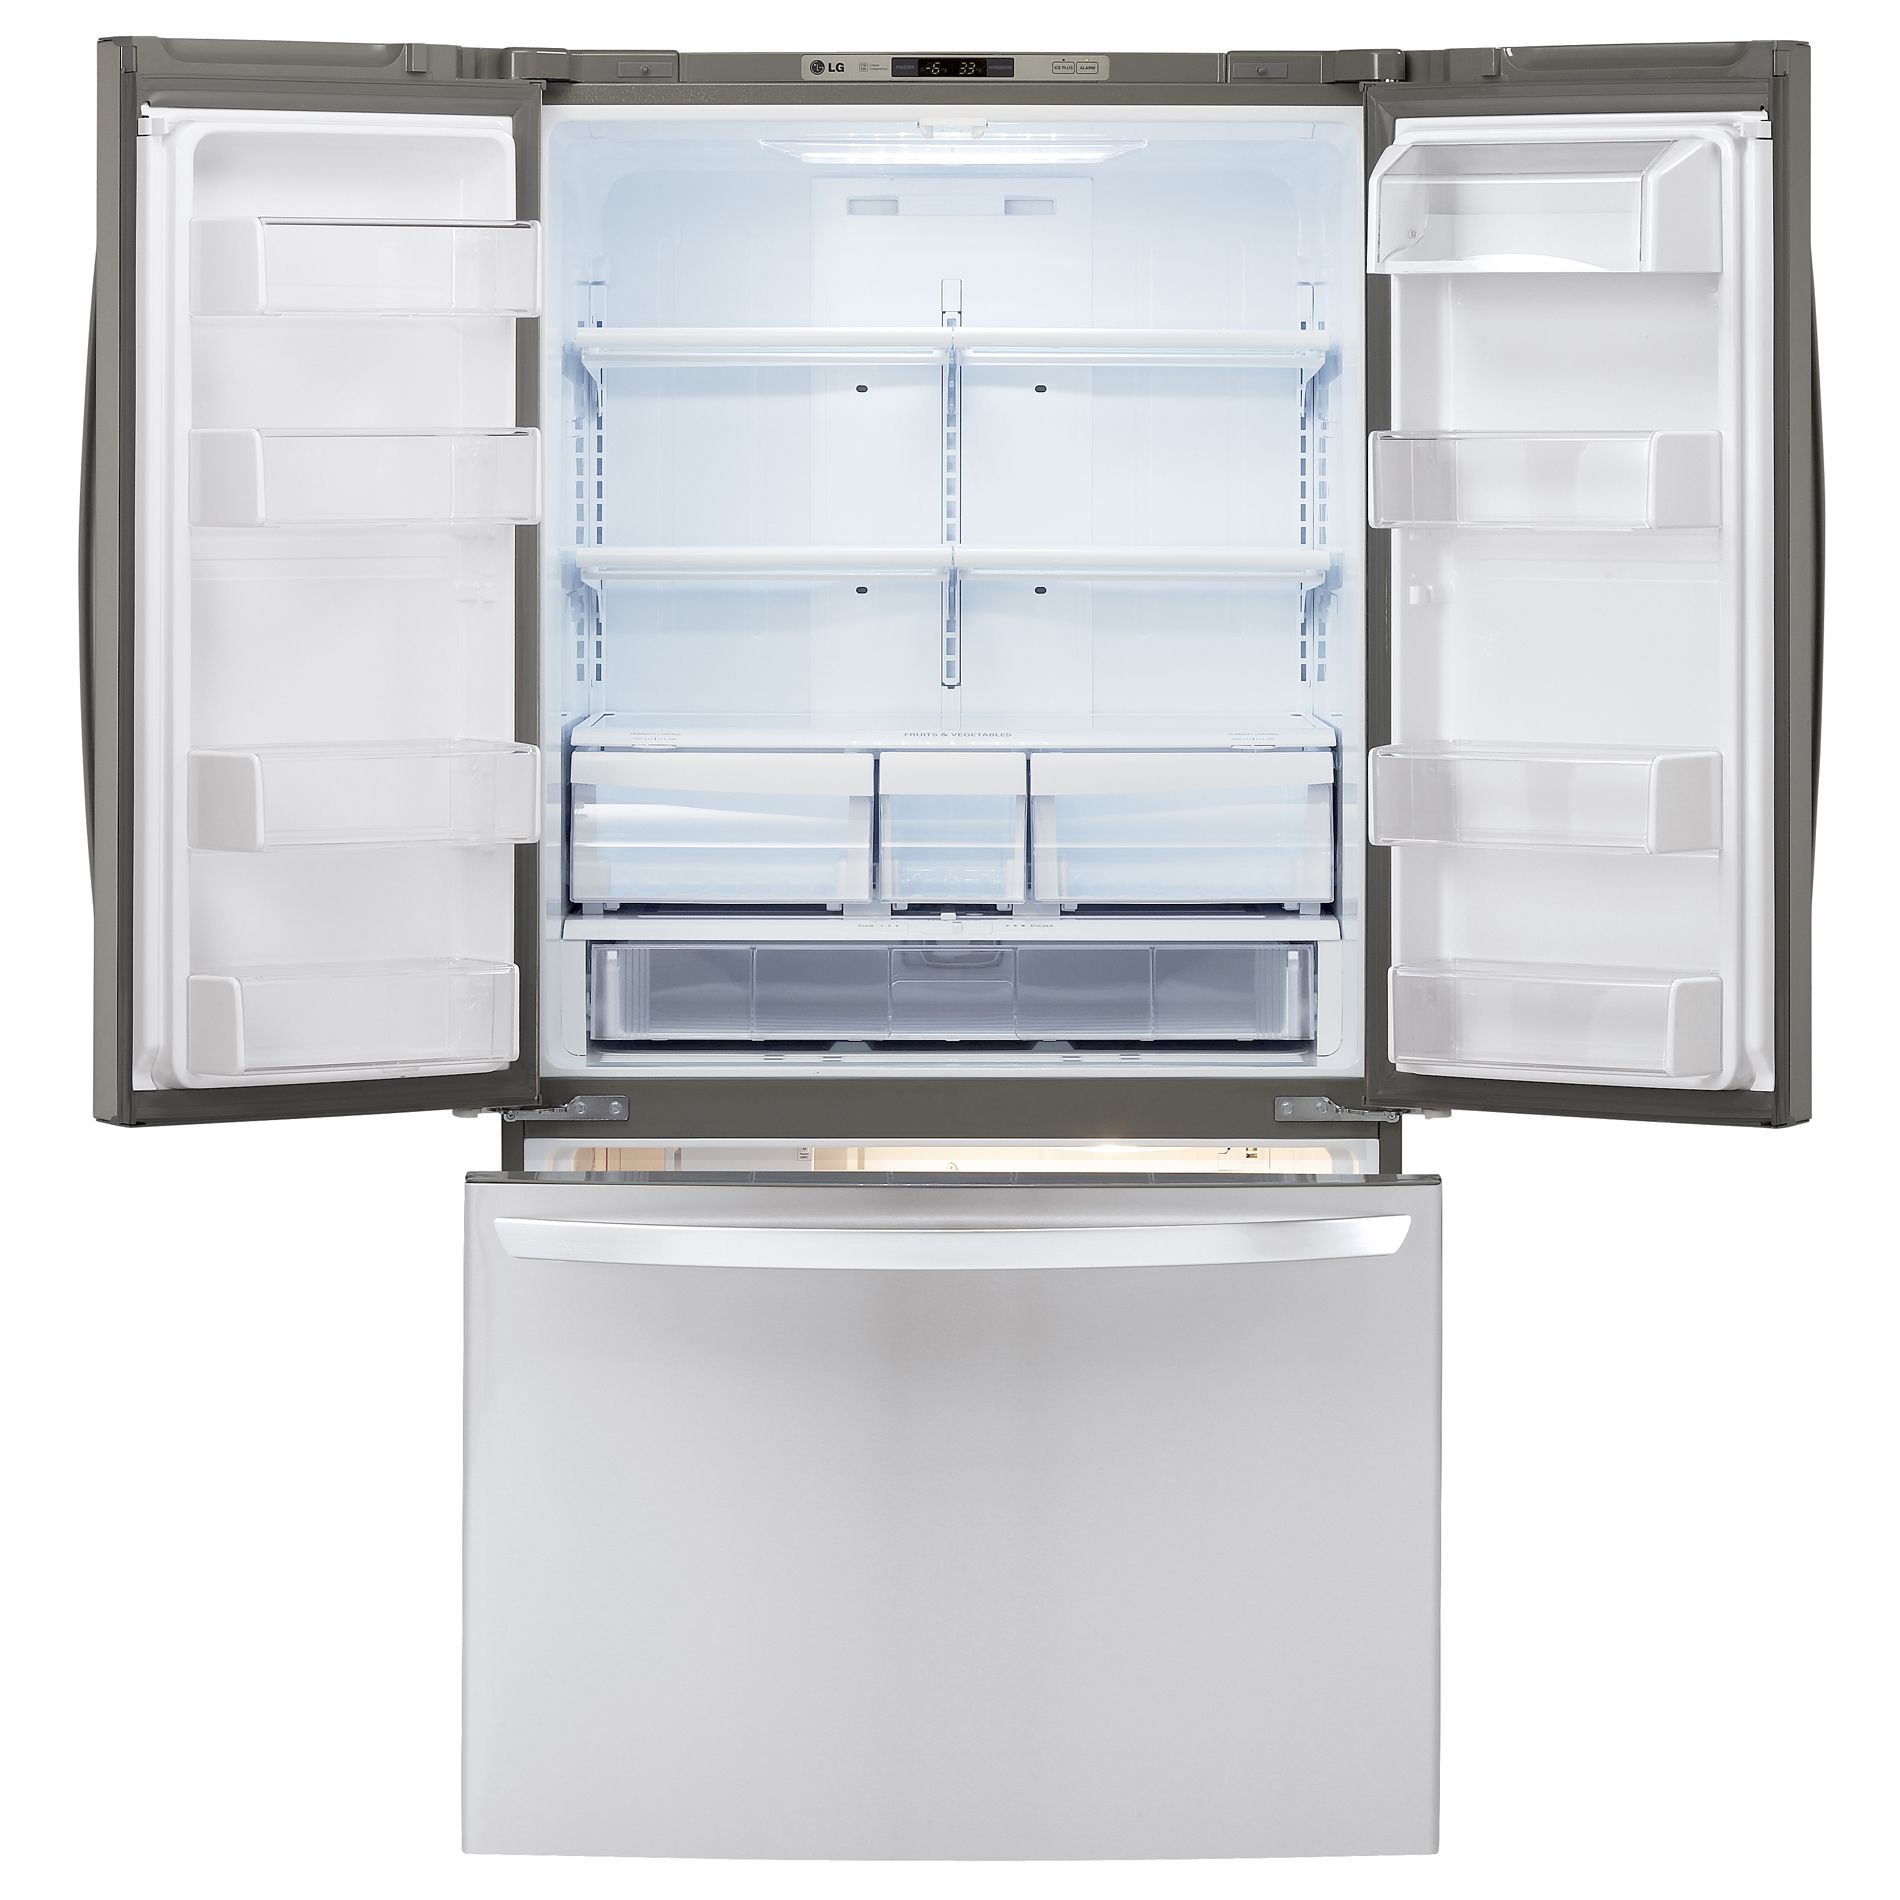 LG 25.0 cu. ft. French-Door Bottom-Freezer Refrigerator (LFC25776ST)